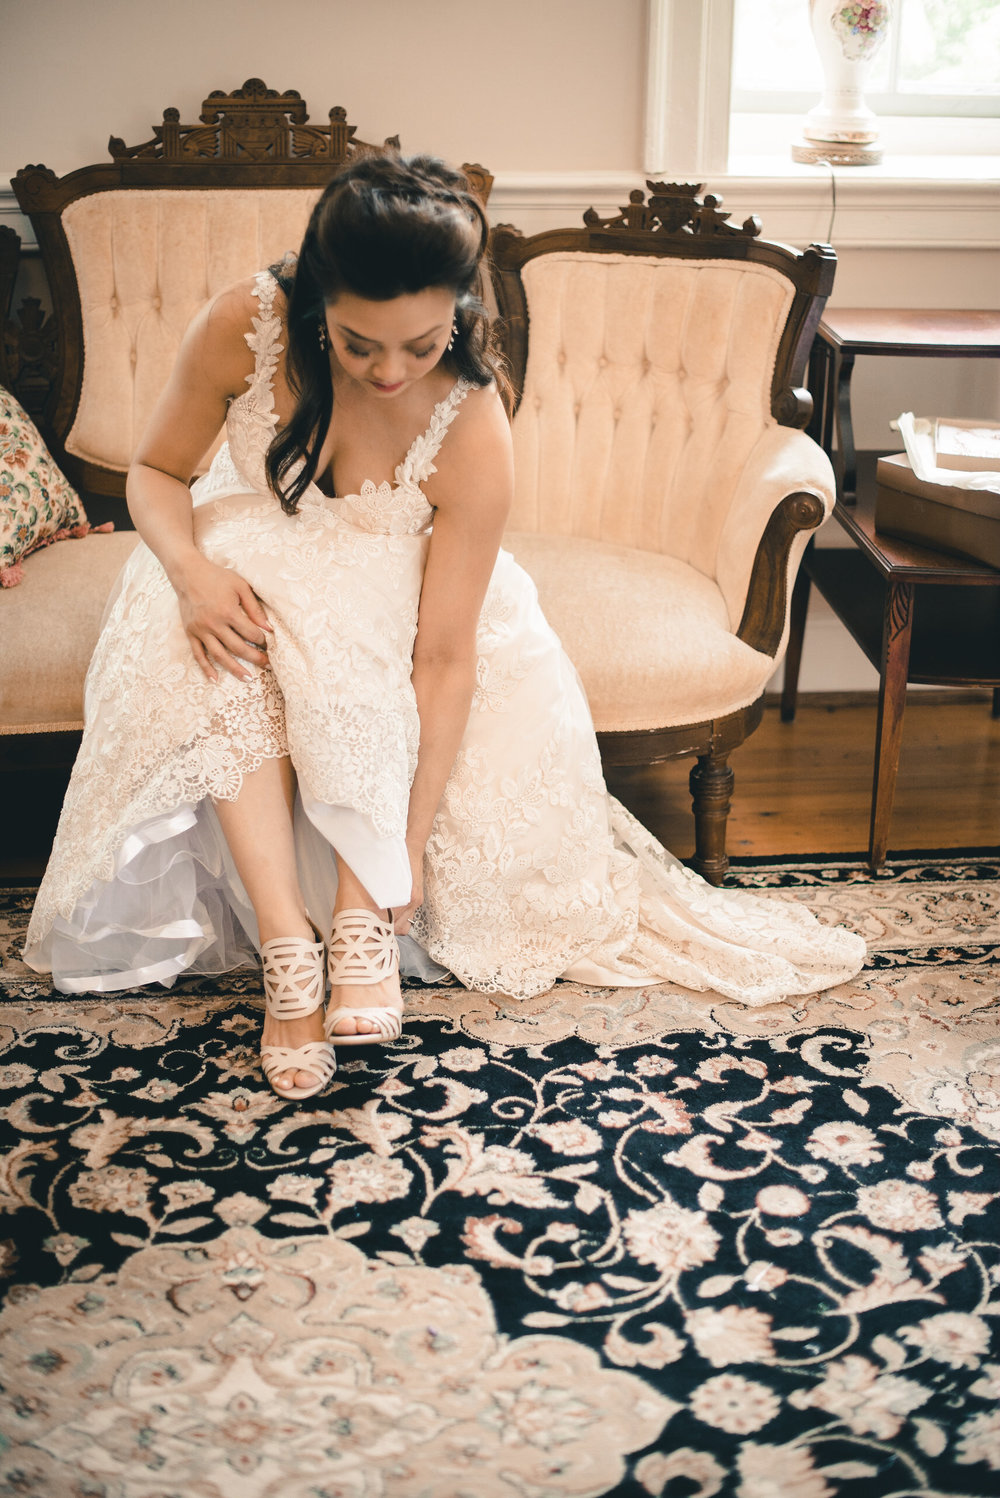 Bride putting on shoes